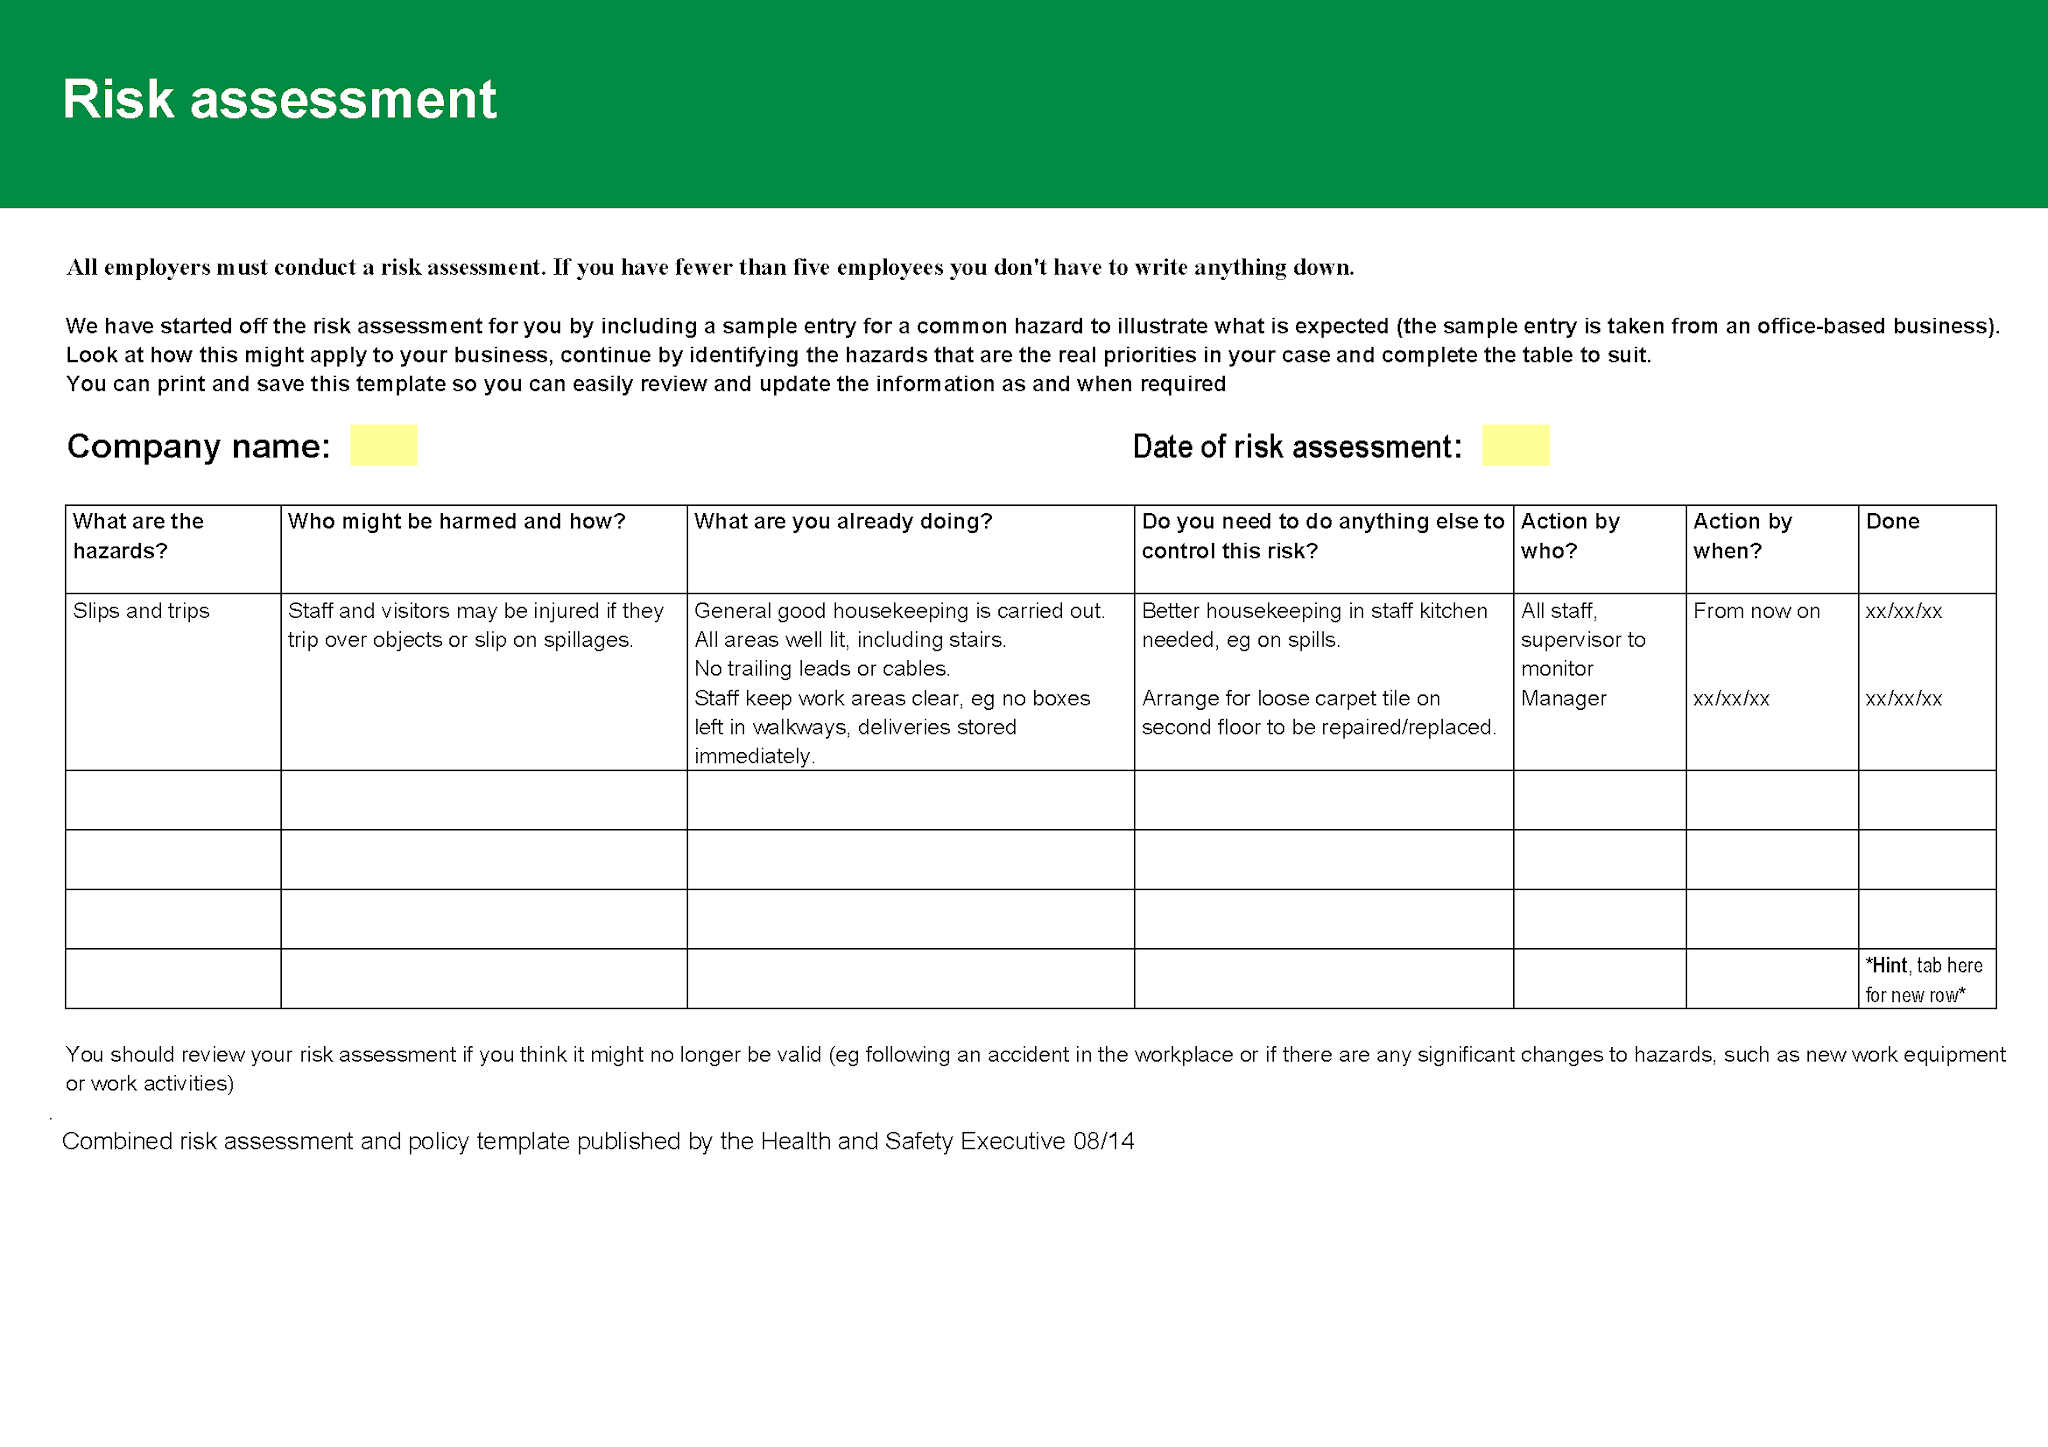 Risk assessment policy template